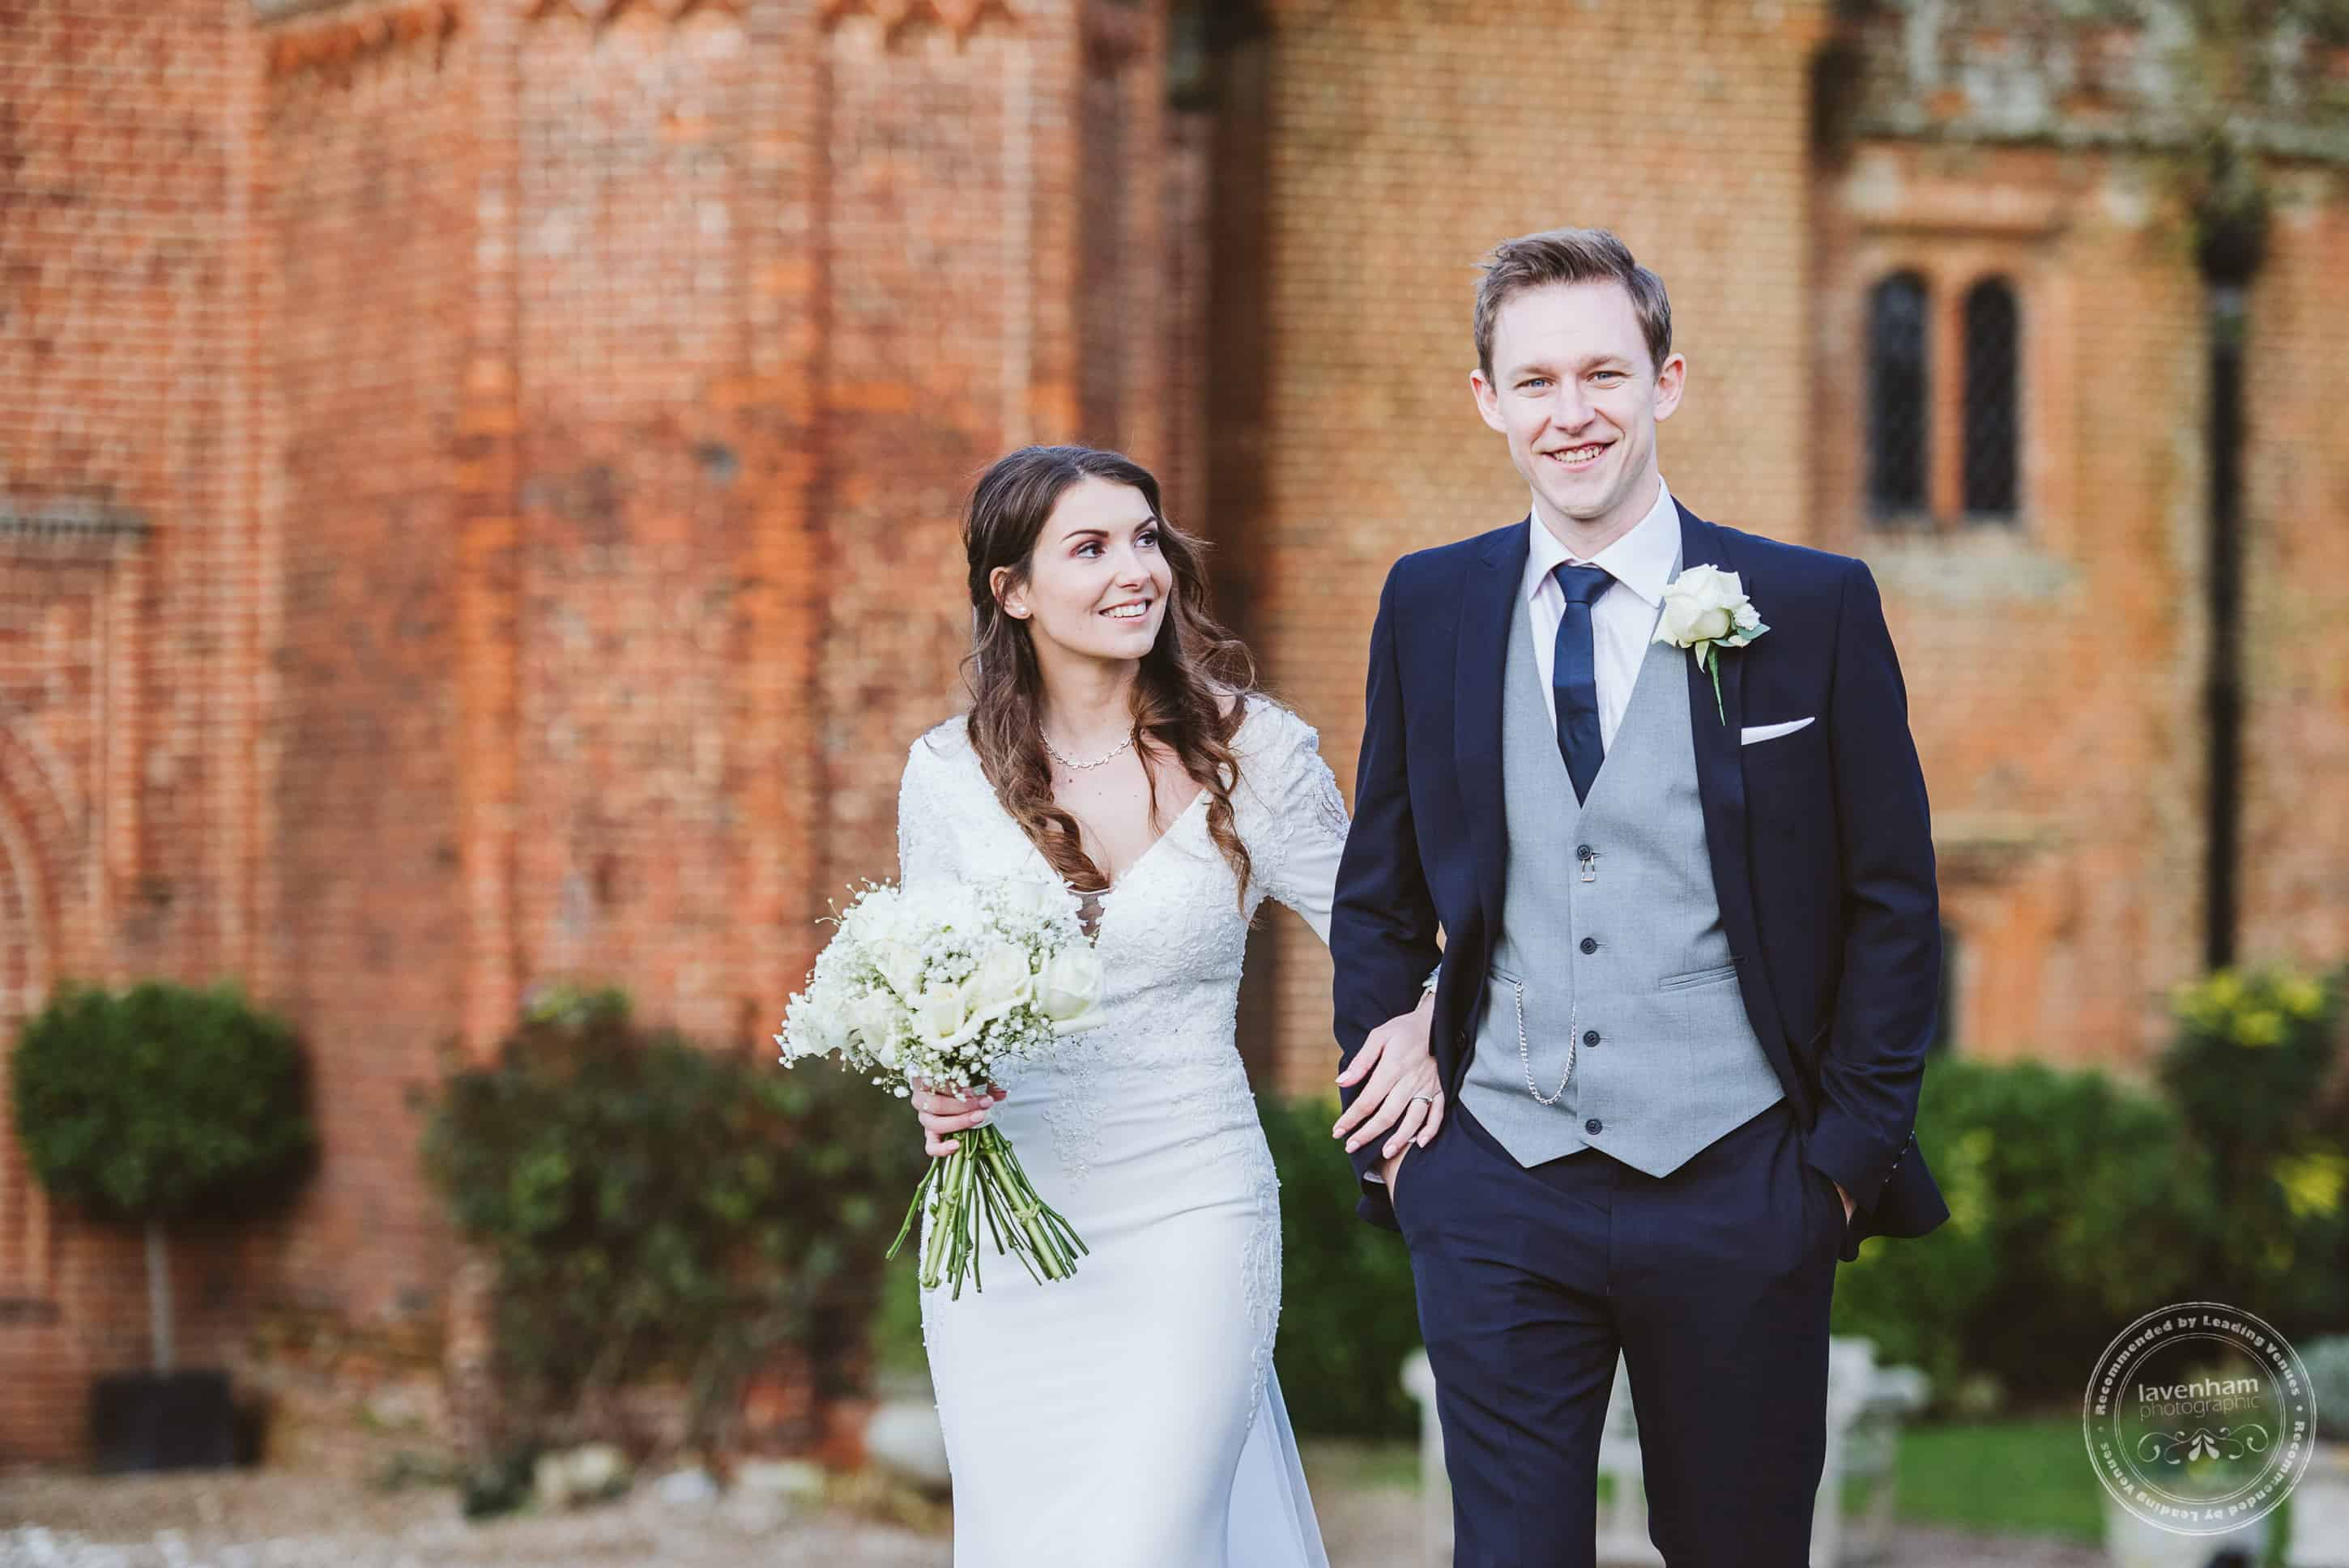 221219 Leez Priory Wedding Photoraphy 088